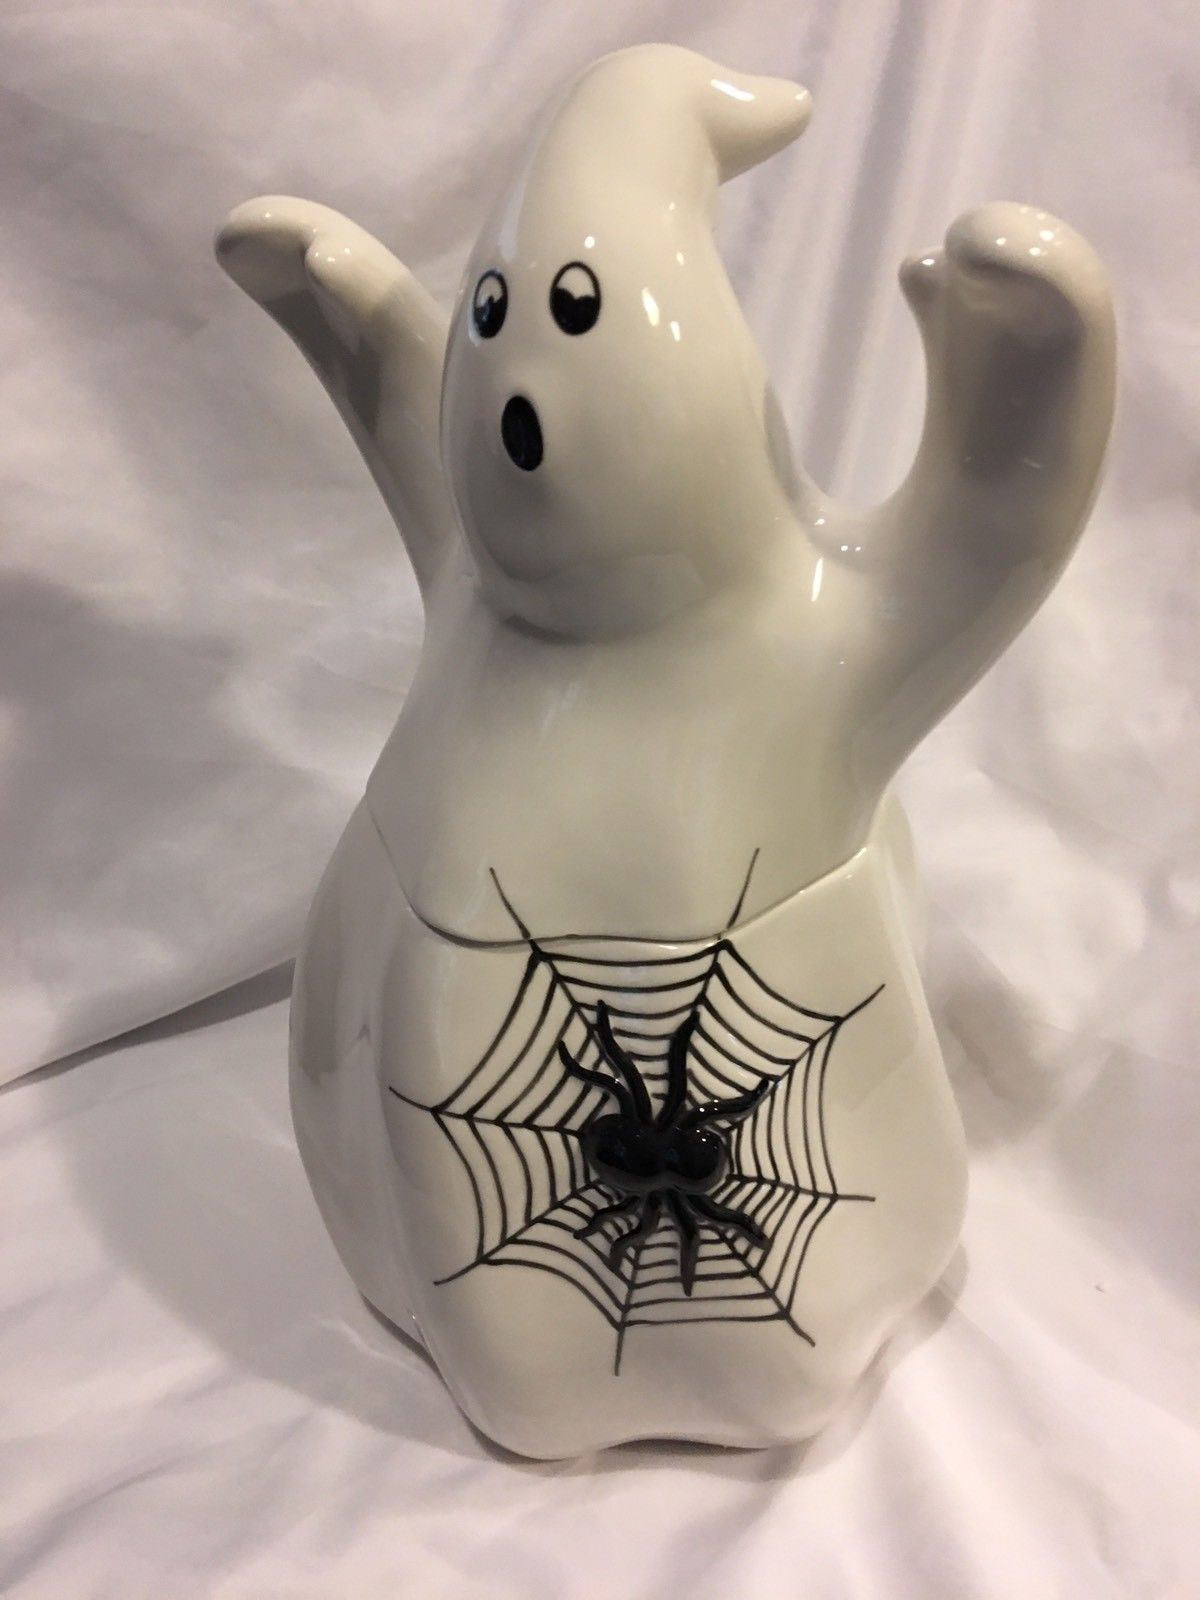 fitz and floyd halloween holloween ghost with spider cookie jar decorations new